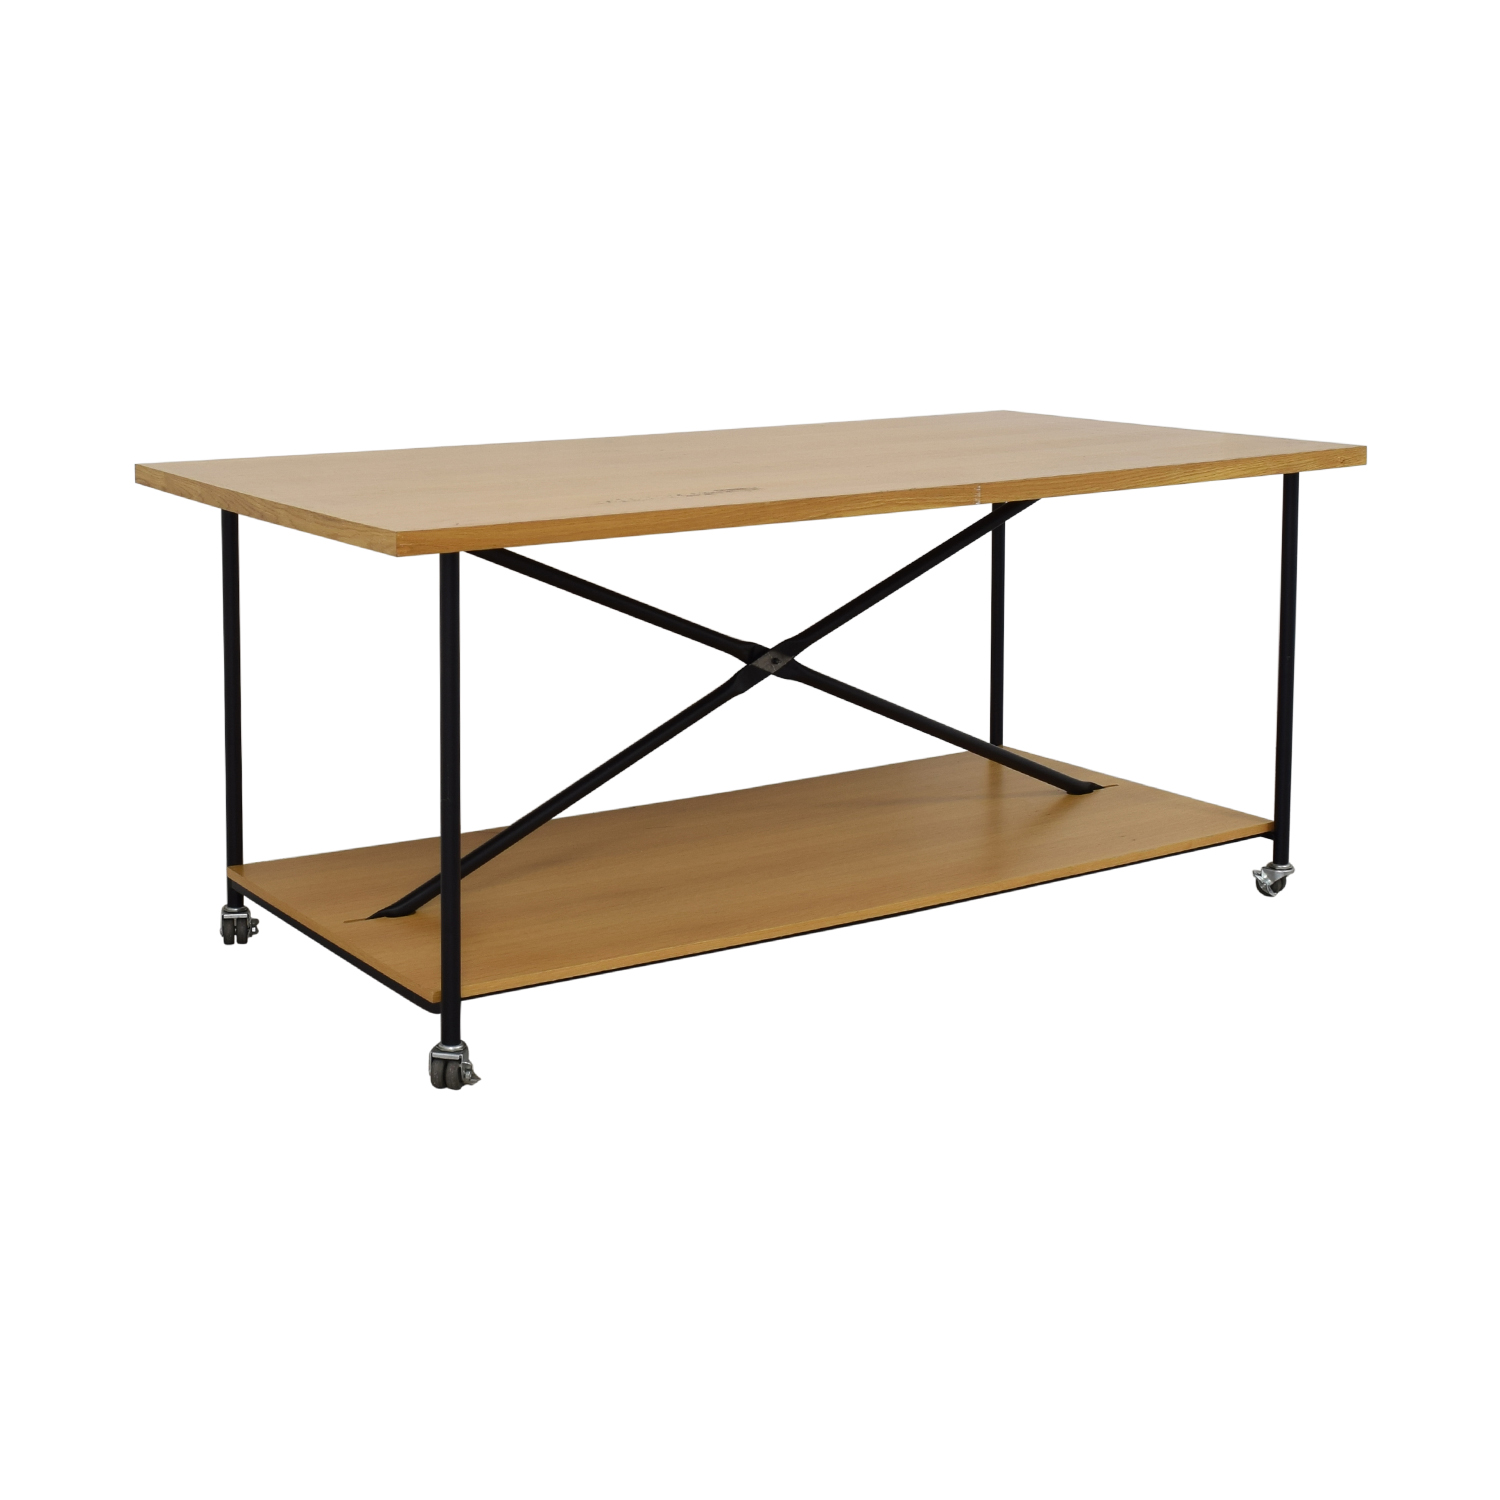 Wooden Work Table with Wheels coupon